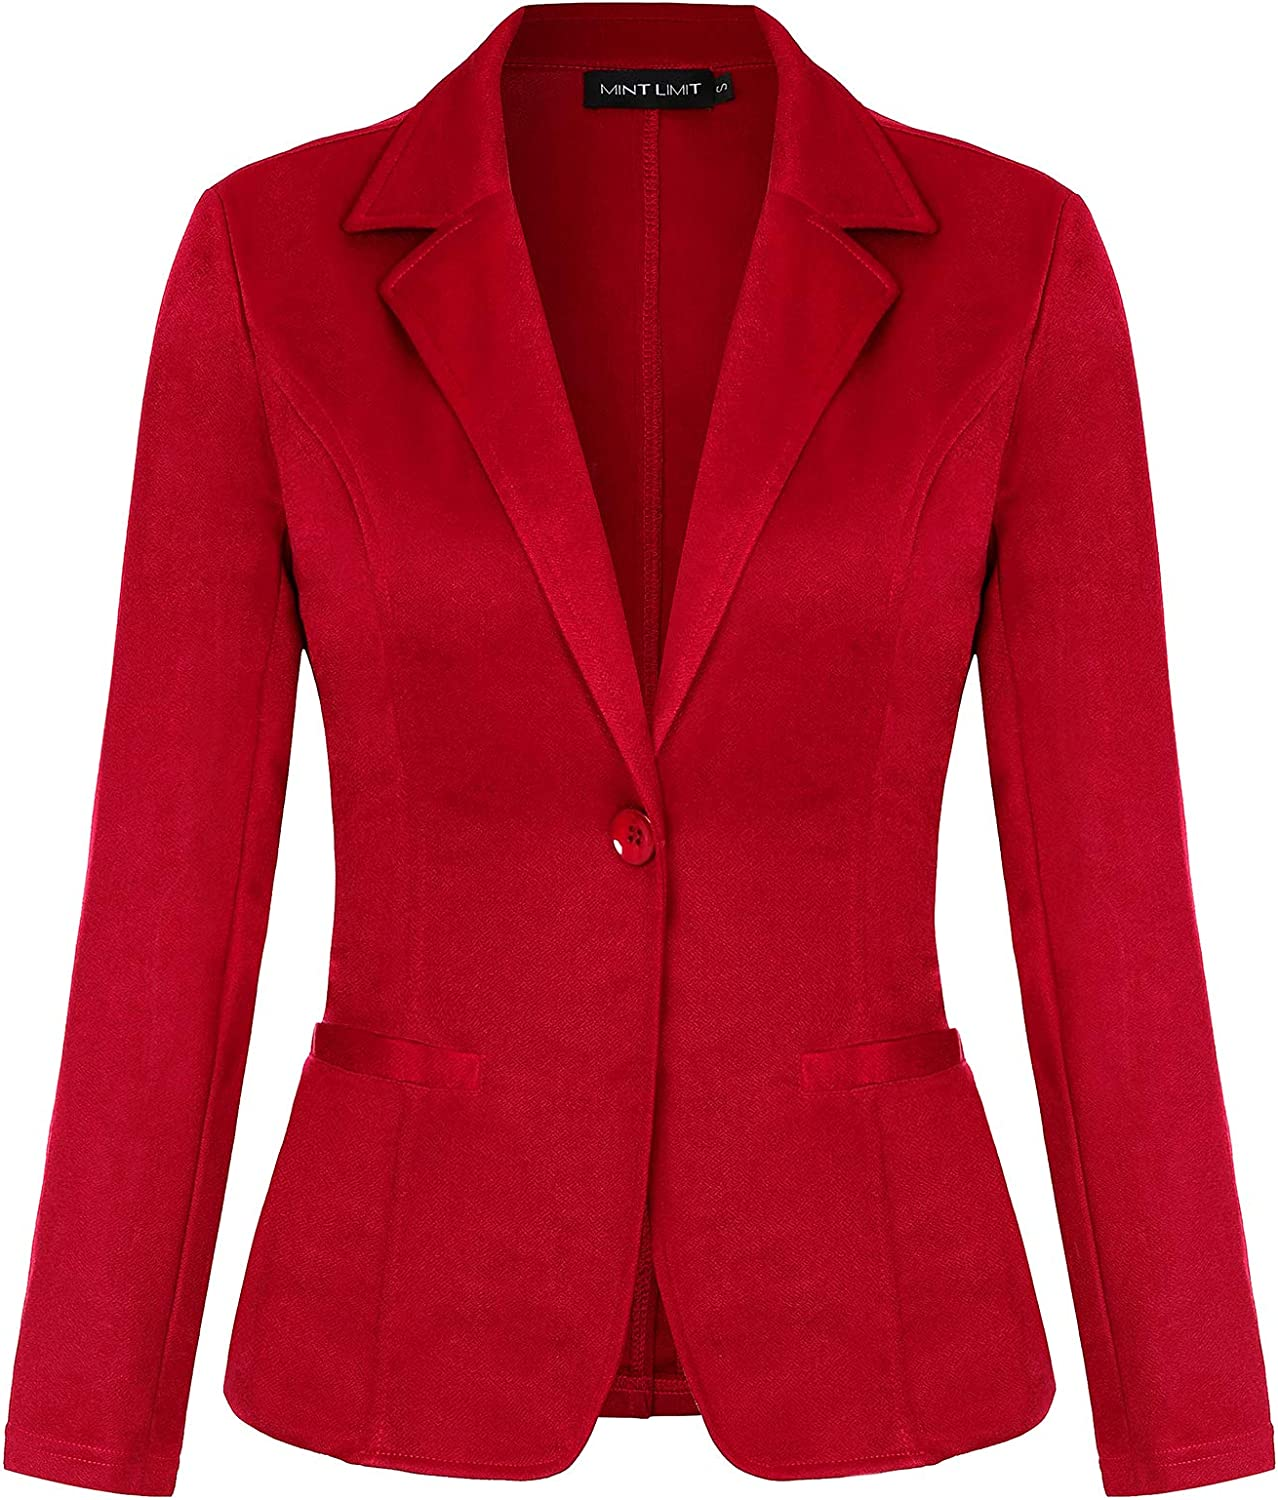 Women's Blazers Long Sleeve Notched Lapel One Button Work Office Blazer Jacket Suit Pockets